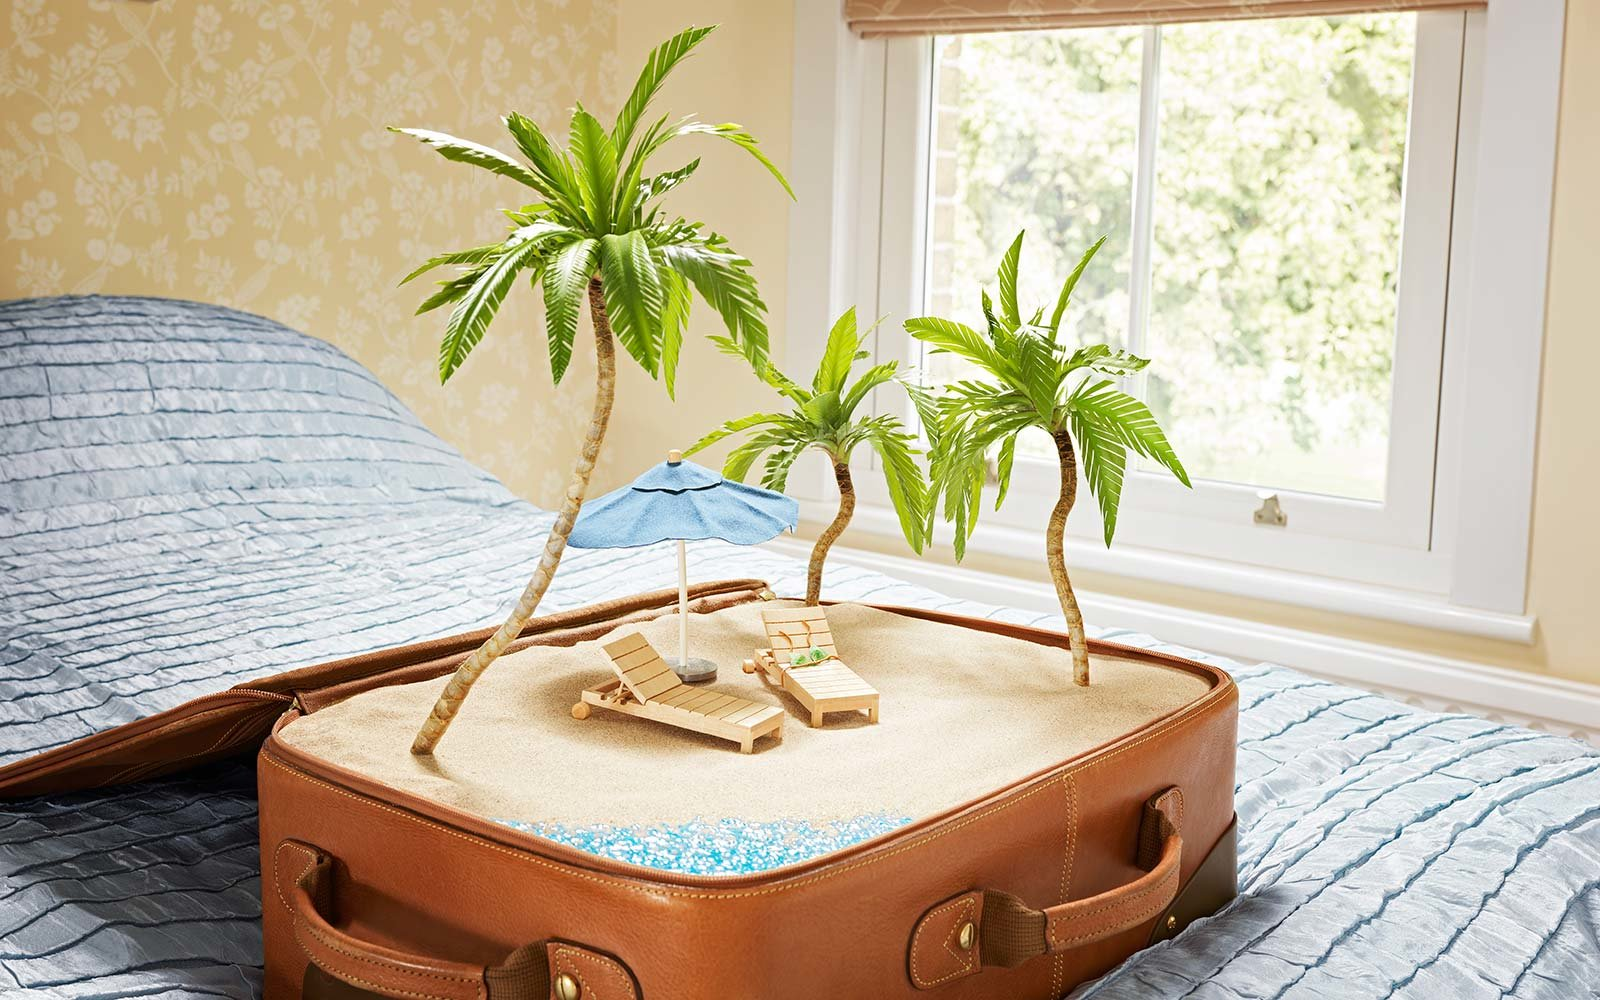 tropical beach scene inside a suitcase, palm trees, adventure, beach, bedroom, Happiness, Healthy Lifestyle, holidays, palm trees, paradise, parasol, sand, sea, suburban home, suitcase, Summer, sun loungers, tropical, Vacations